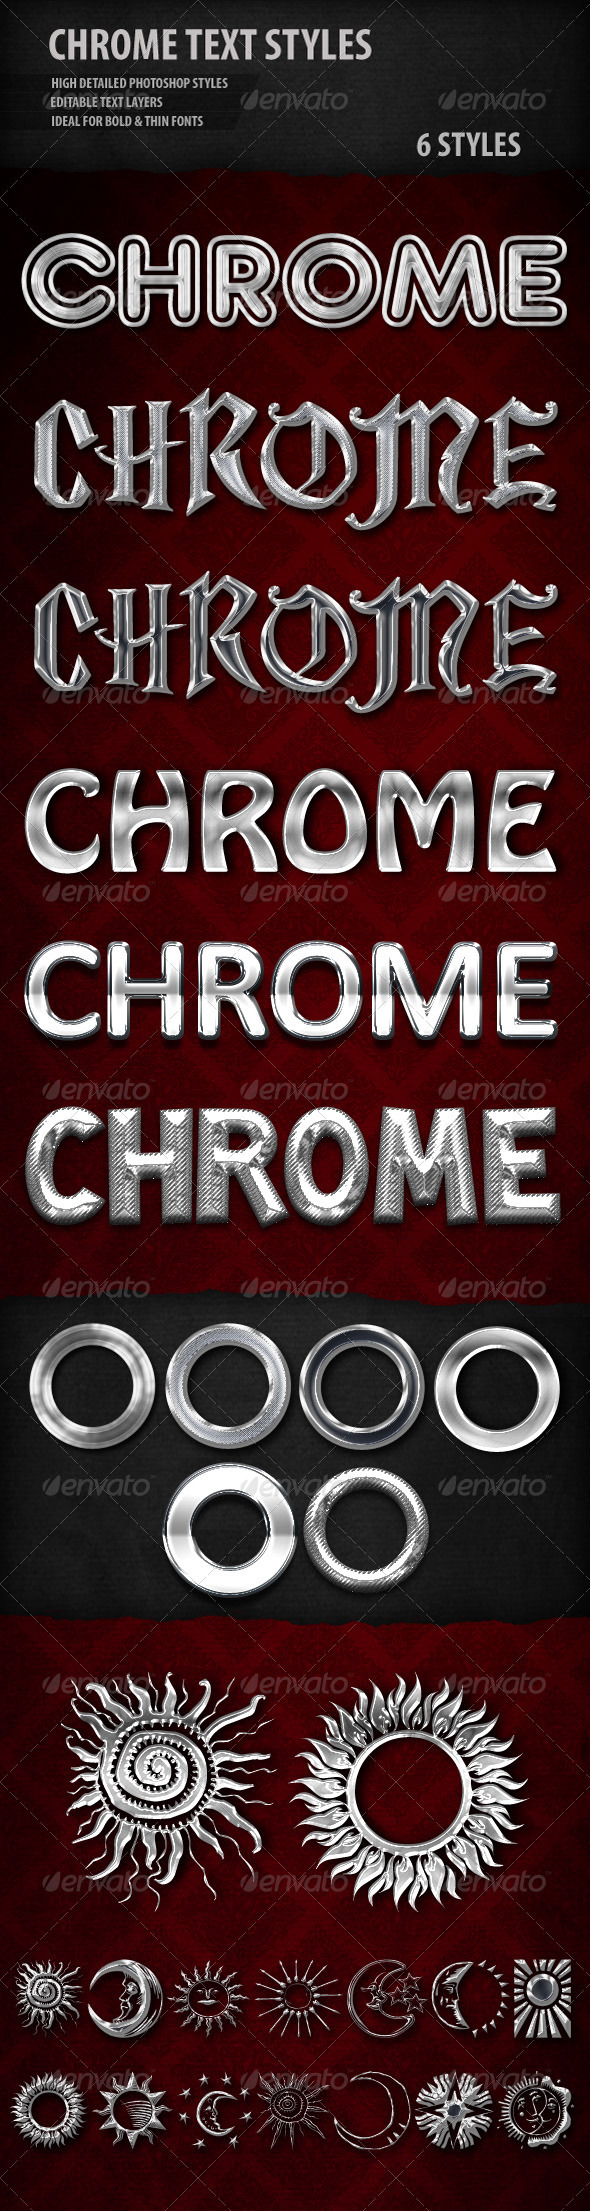 Chrome Text Styles - Styles Photoshop